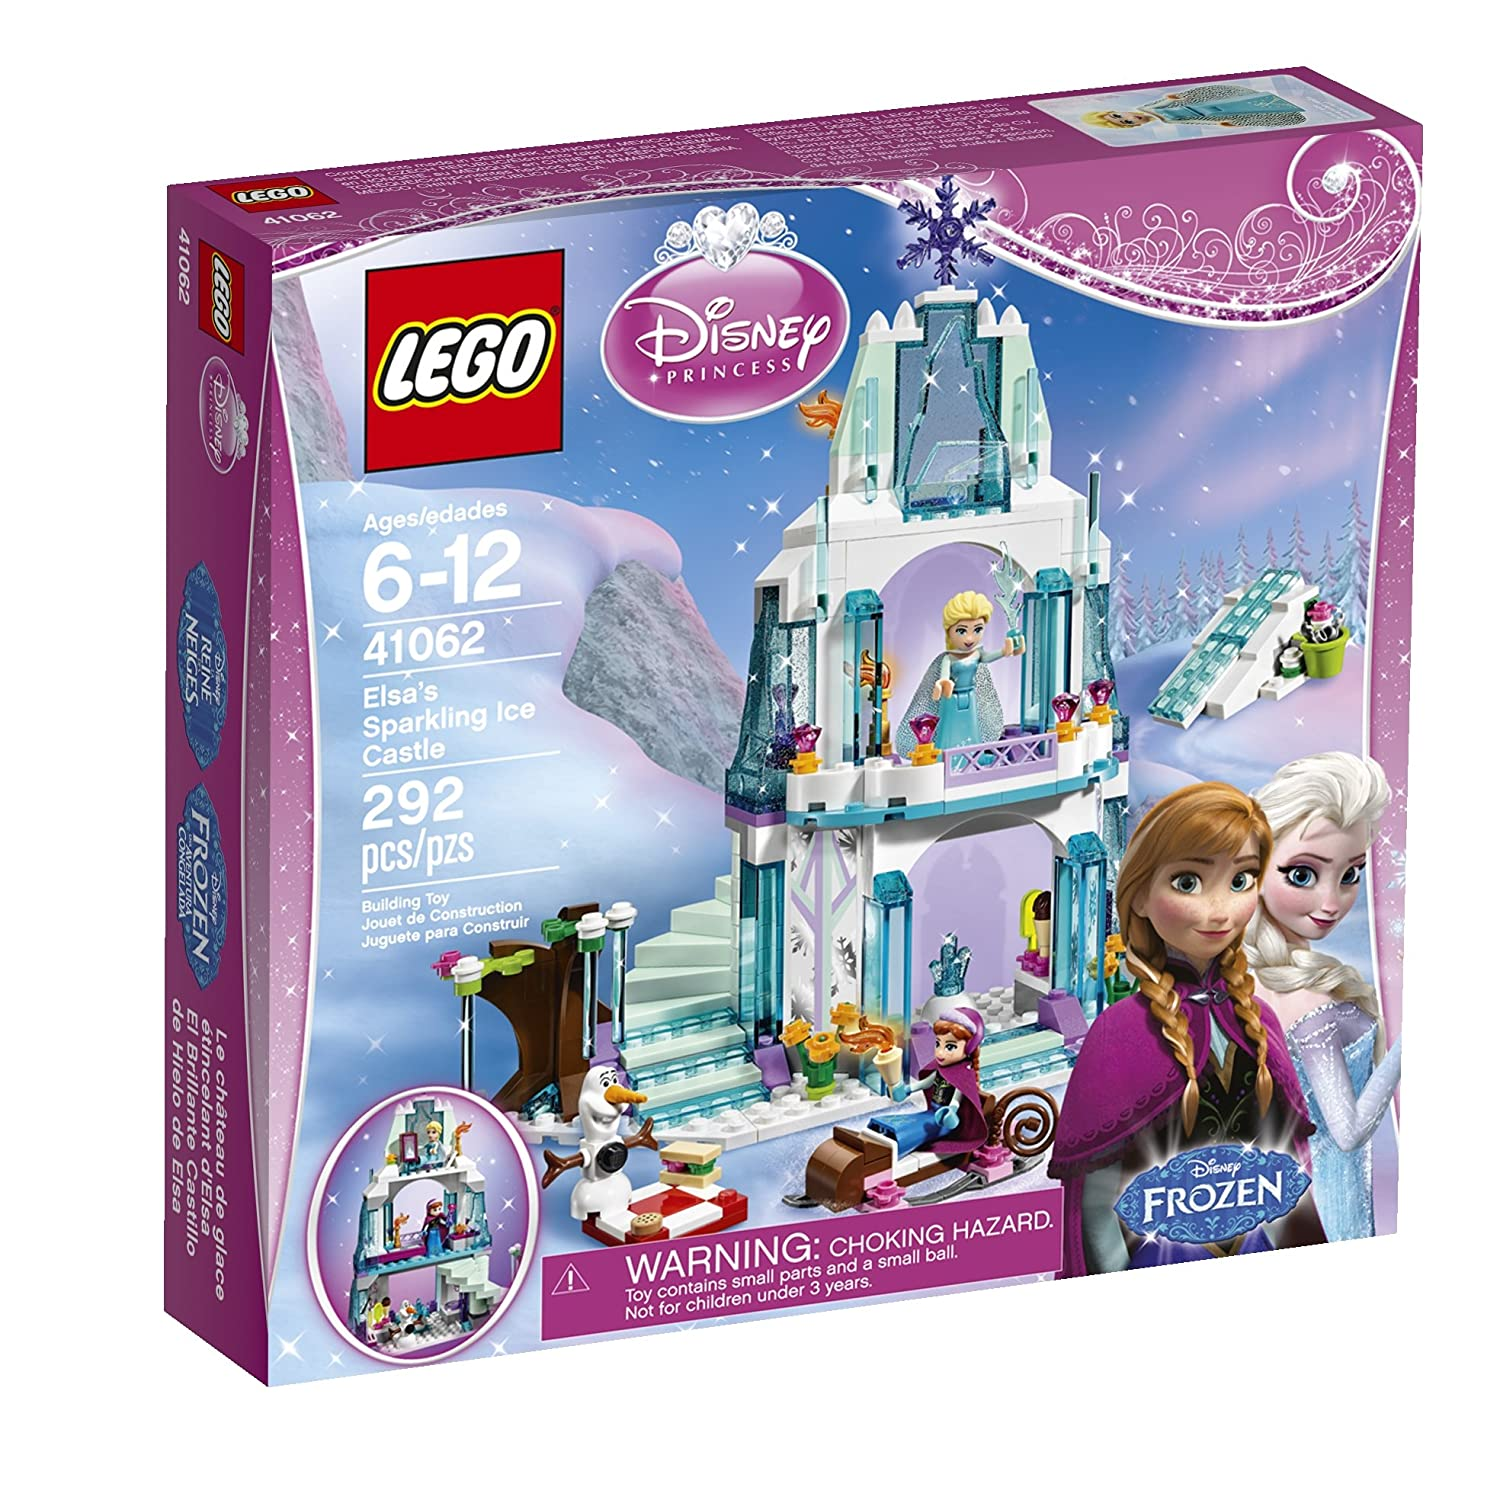 Elsa Sparkling Ice Castle Lego Set with Secret Staircase and Sleigh